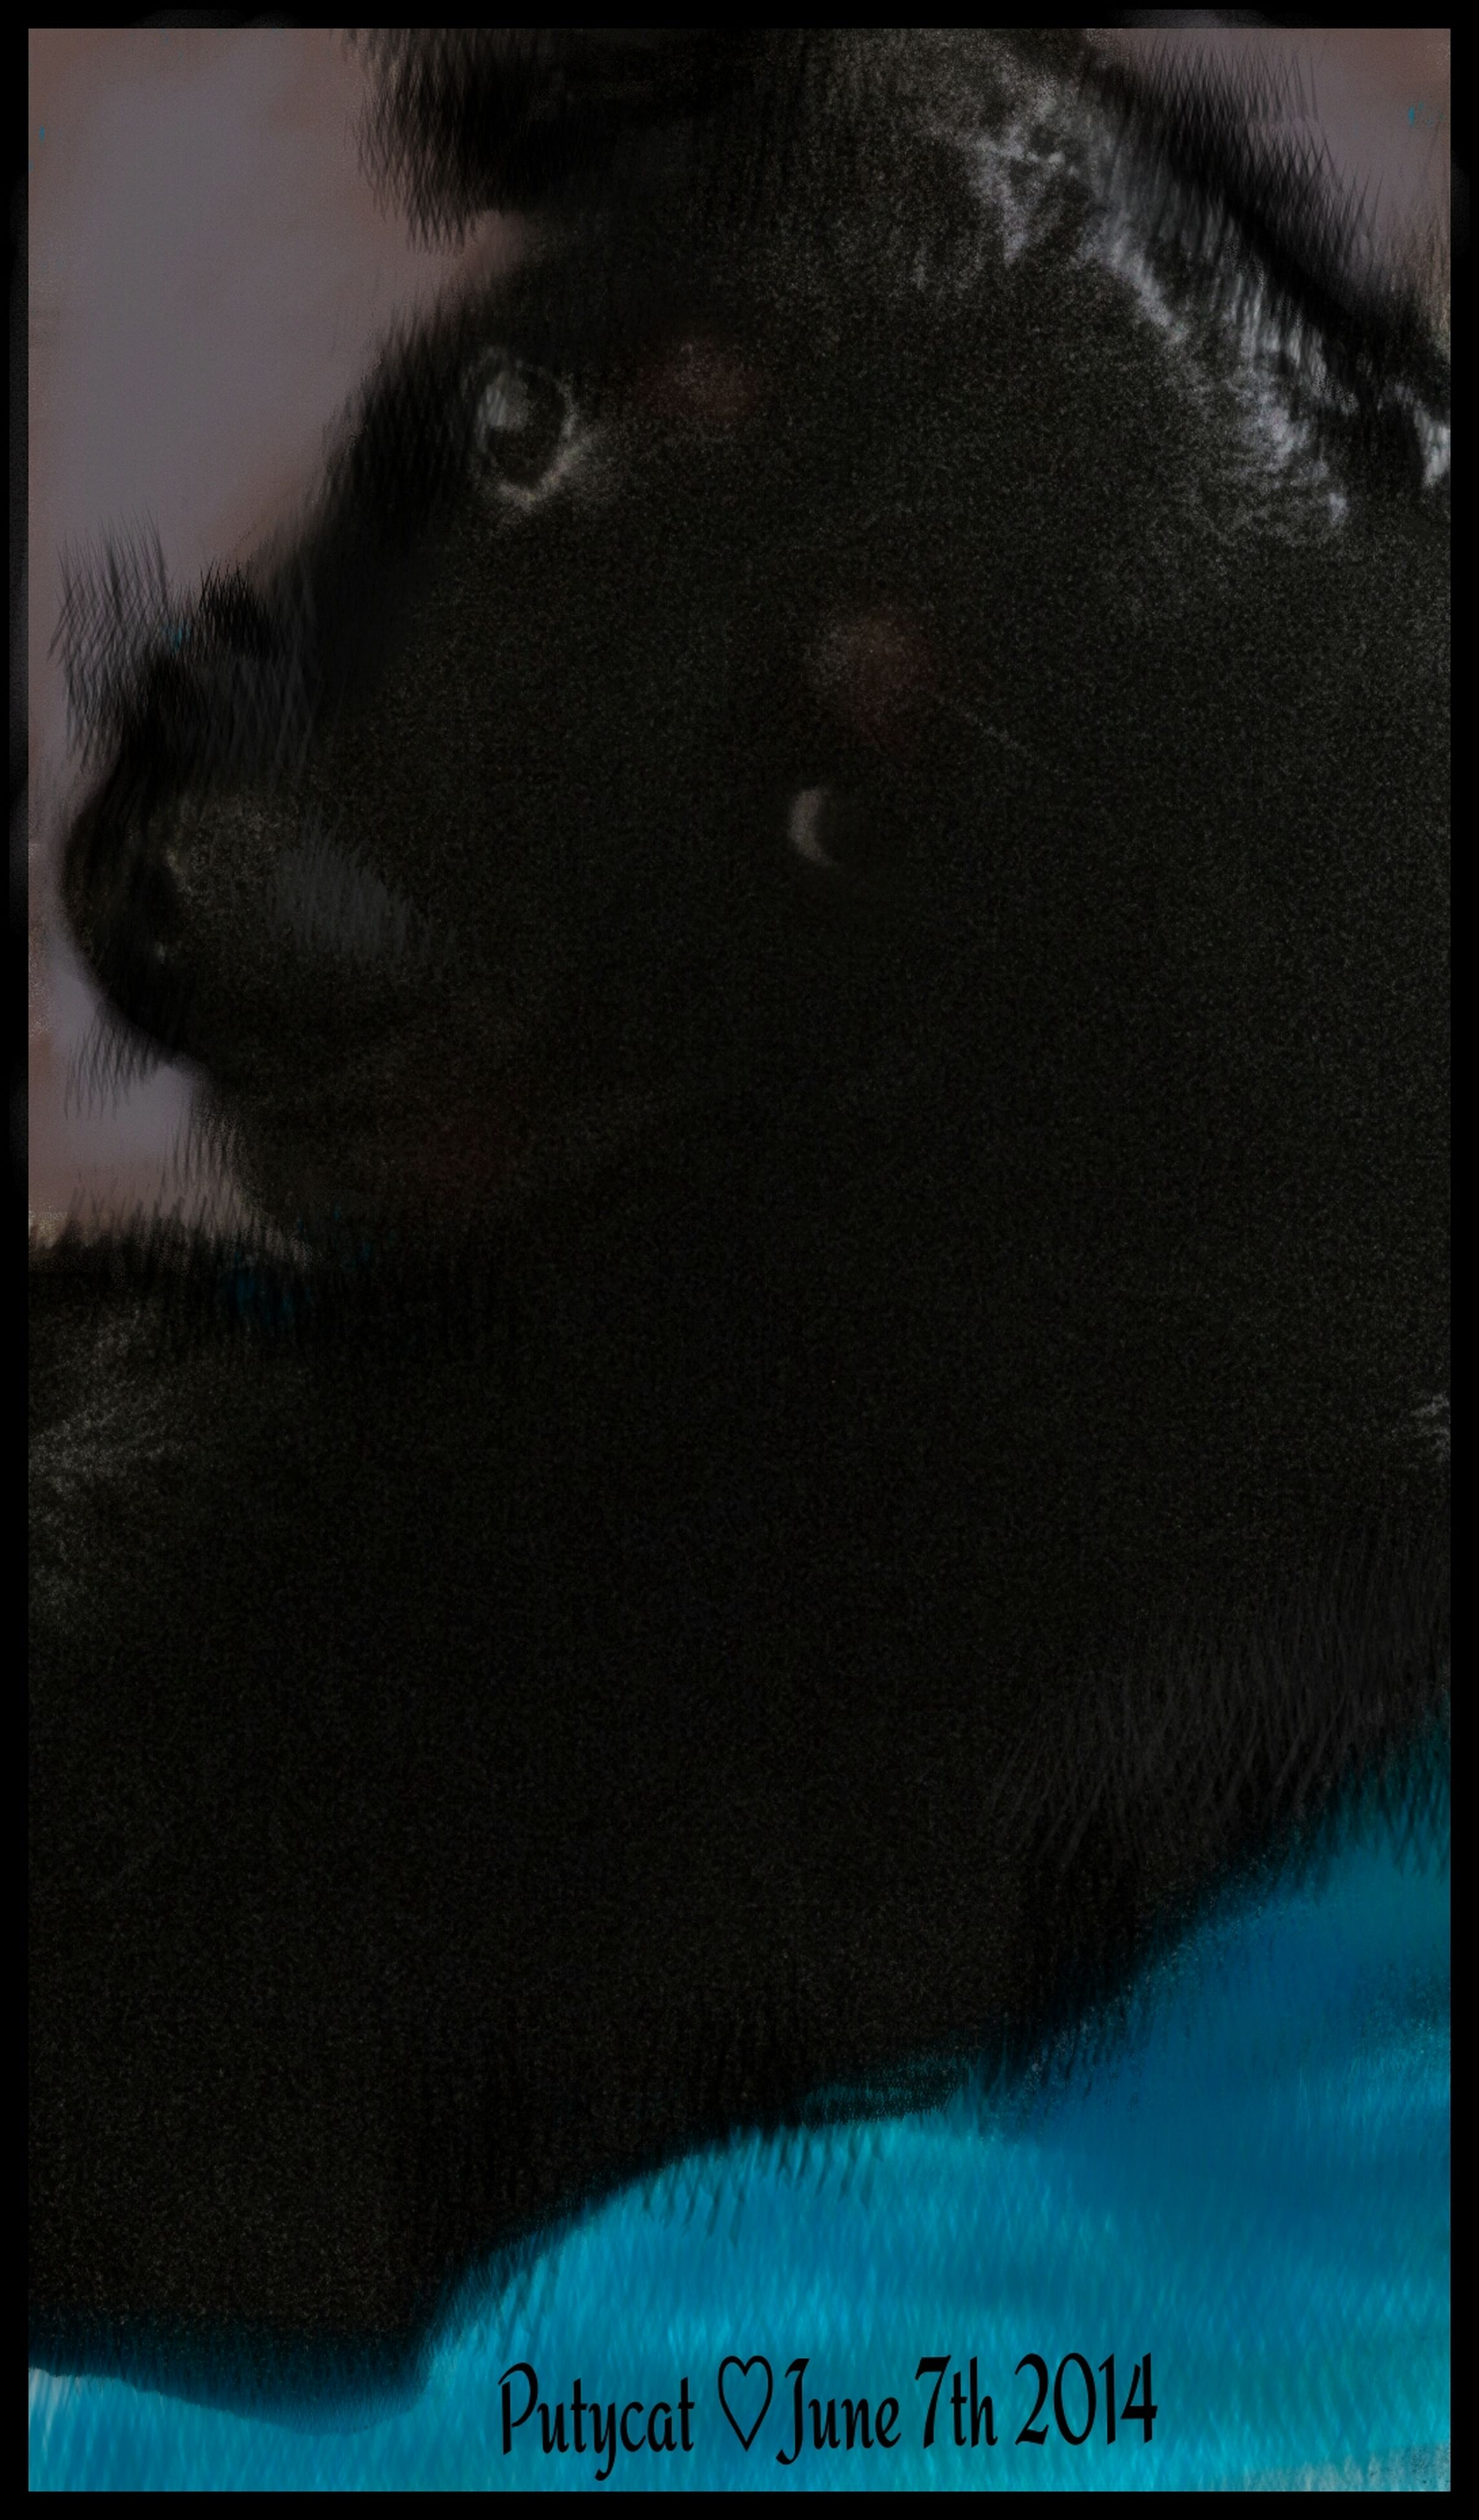 transfer print, auto post production filter, indoors, one animal, animal themes, pets, domestic animals, text, close-up, mammal, domestic cat, western script, cat, communication, relaxation, part of, one person, high angle view, black color